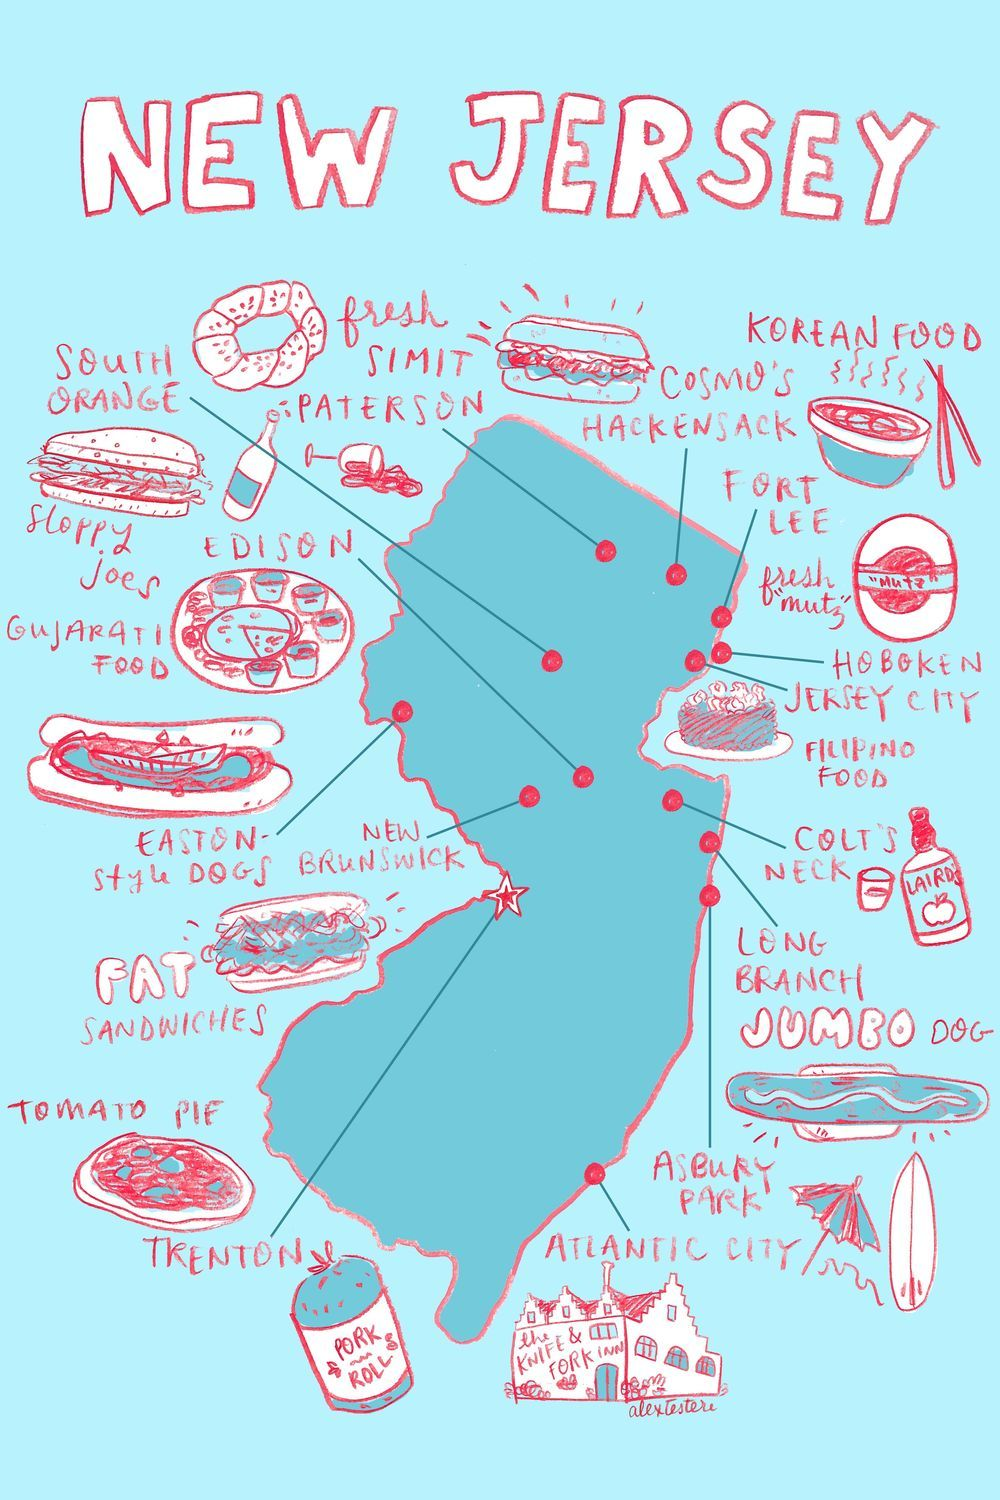 Asbury Park New Jersey Map.The Ultimate Guide To The Best Of New Jersey Food Nj Living